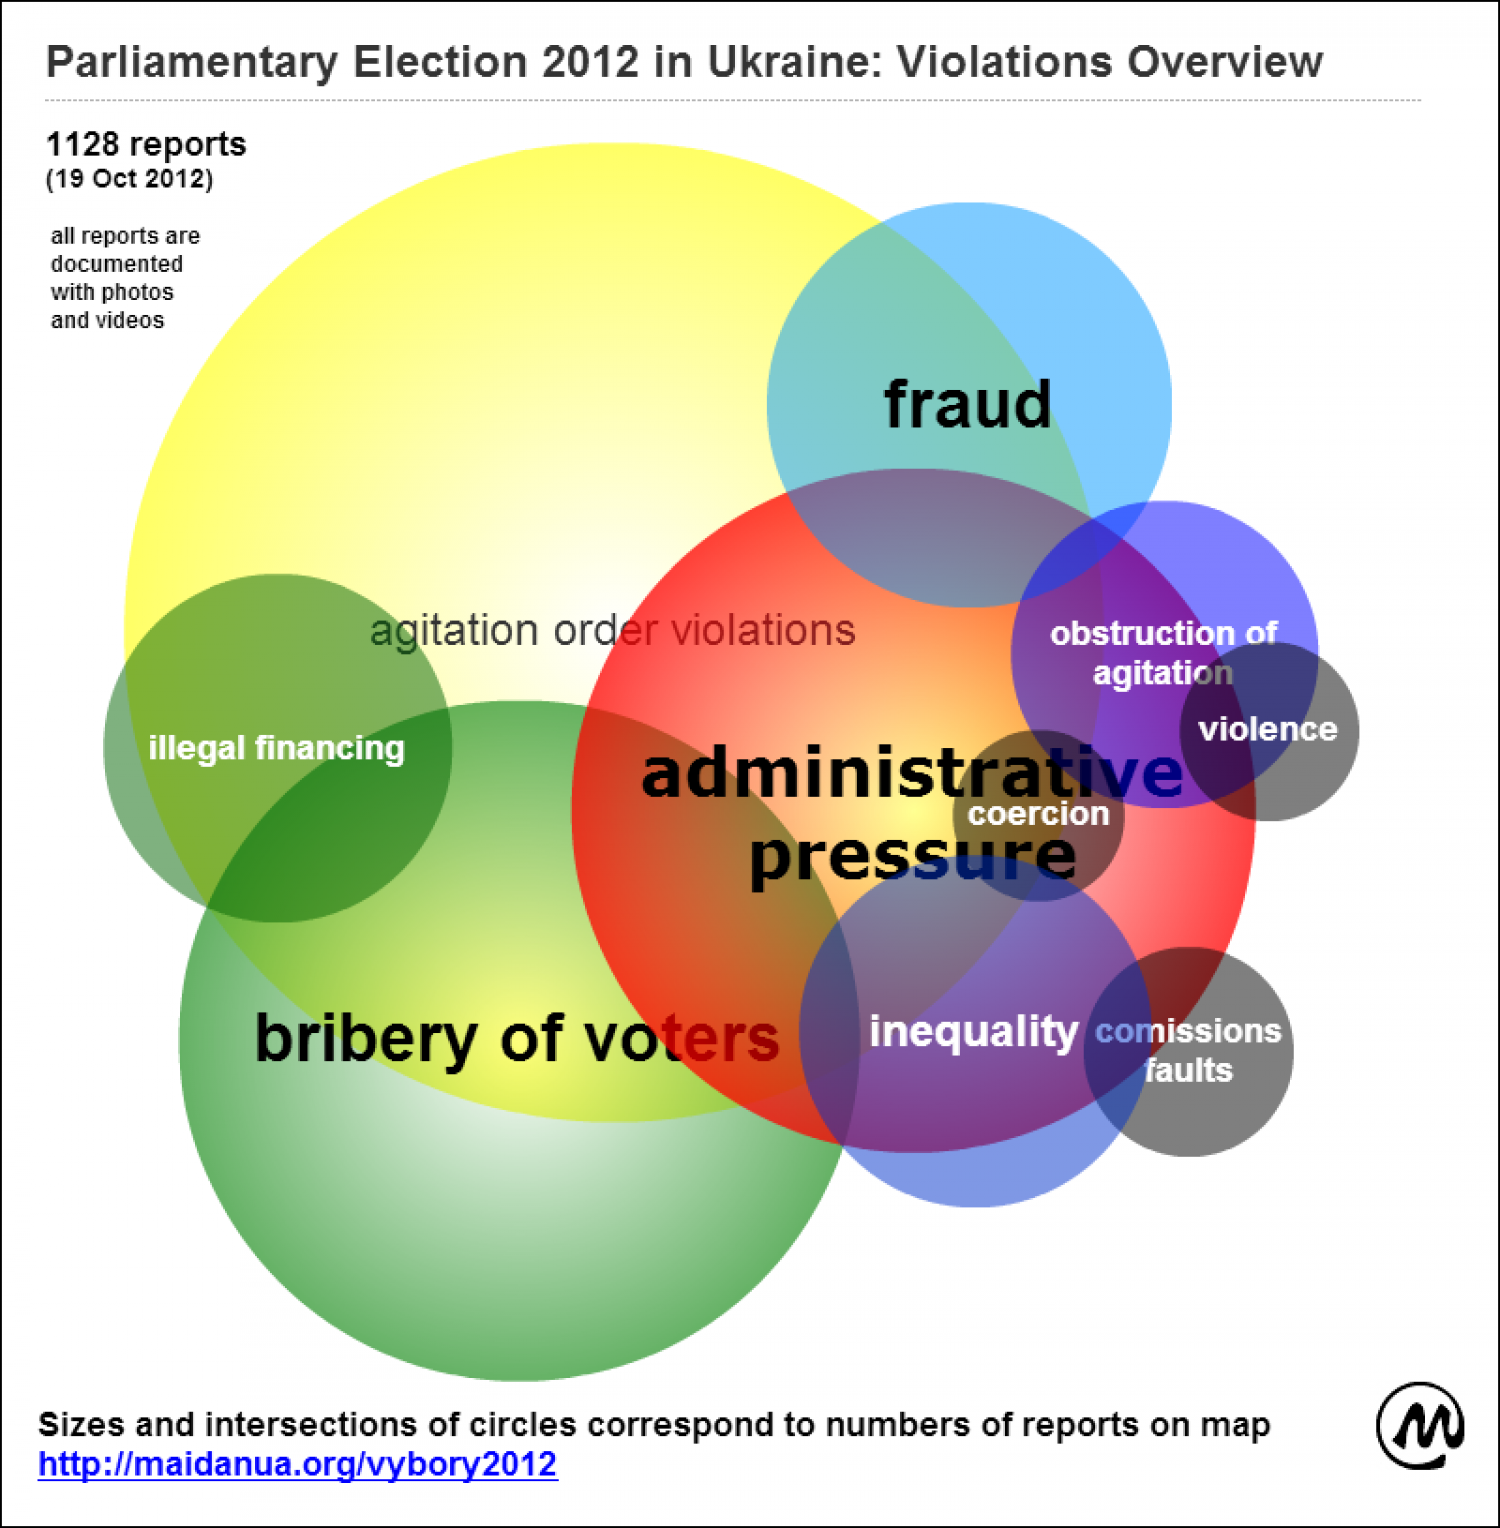 Ukraine Parliamentary Election: Connection Between the Election Violation Types Infographic